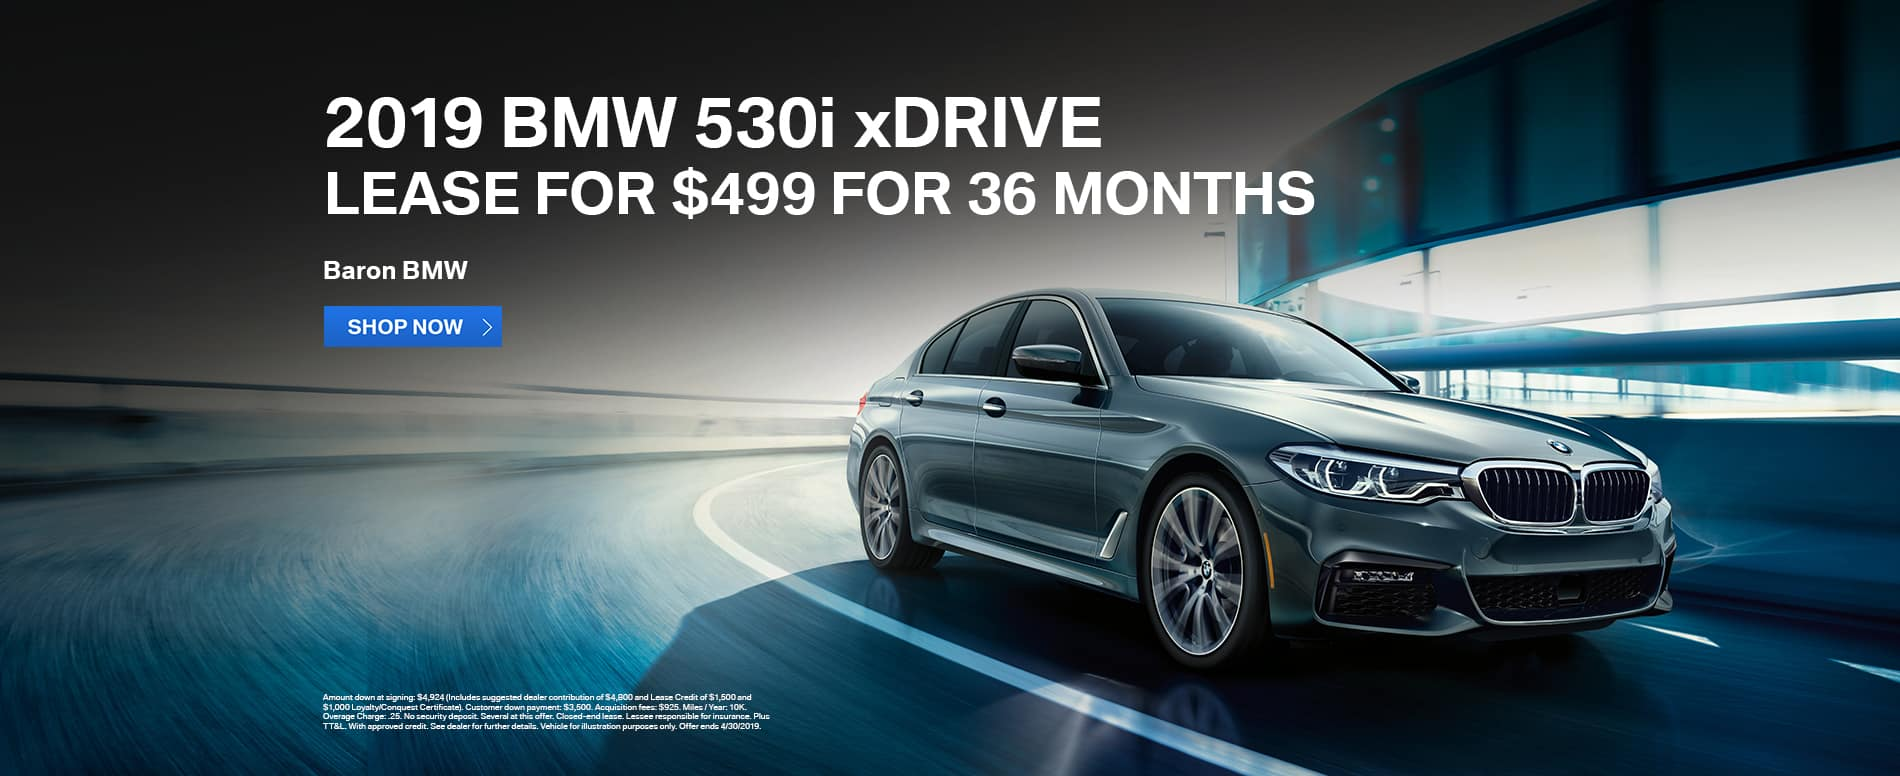 lease-2019-bmw-530i-xdrive-for-499-per-month-baron